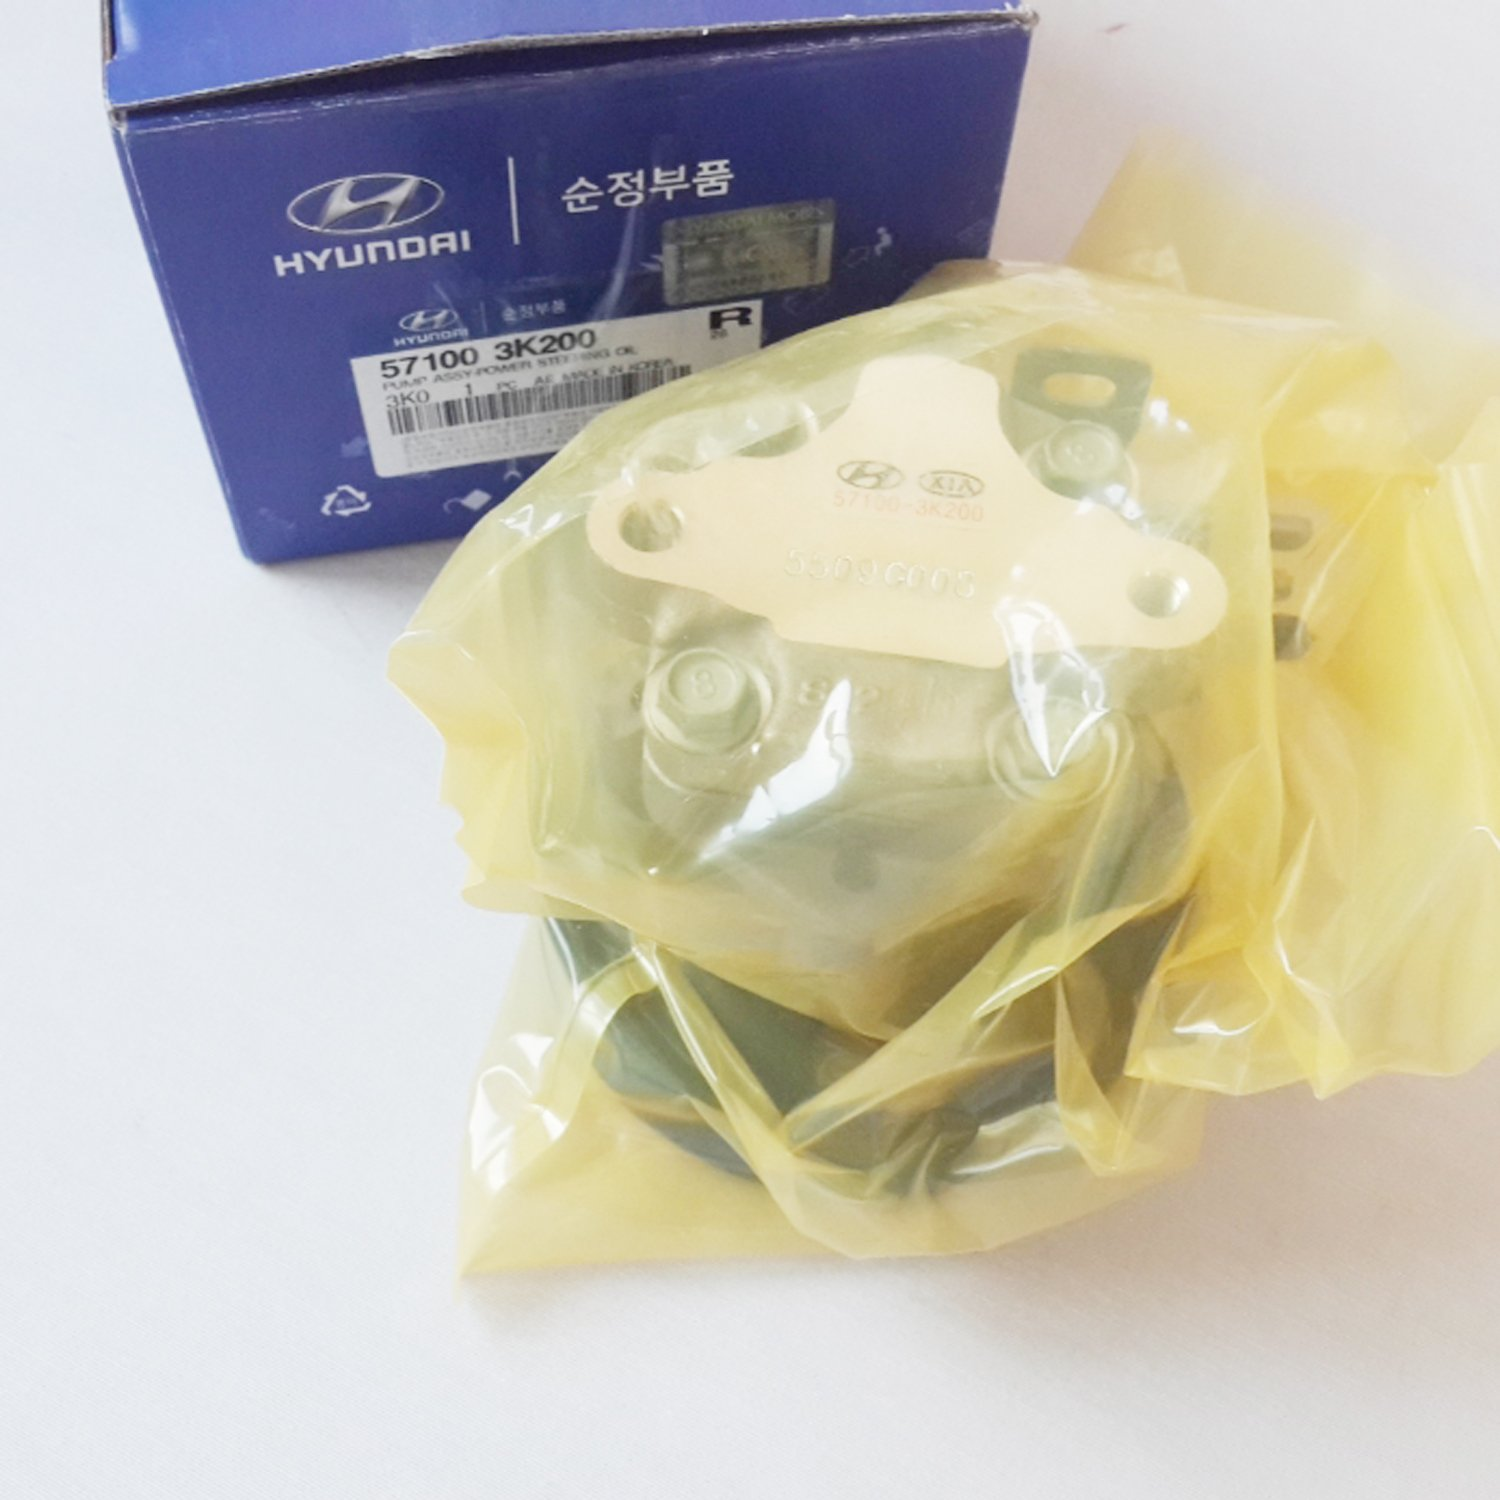 Genuine Parts Hyundai NF Sonata Power Steering Oil Pump Genuine 57100-3K200 DHL Free Service